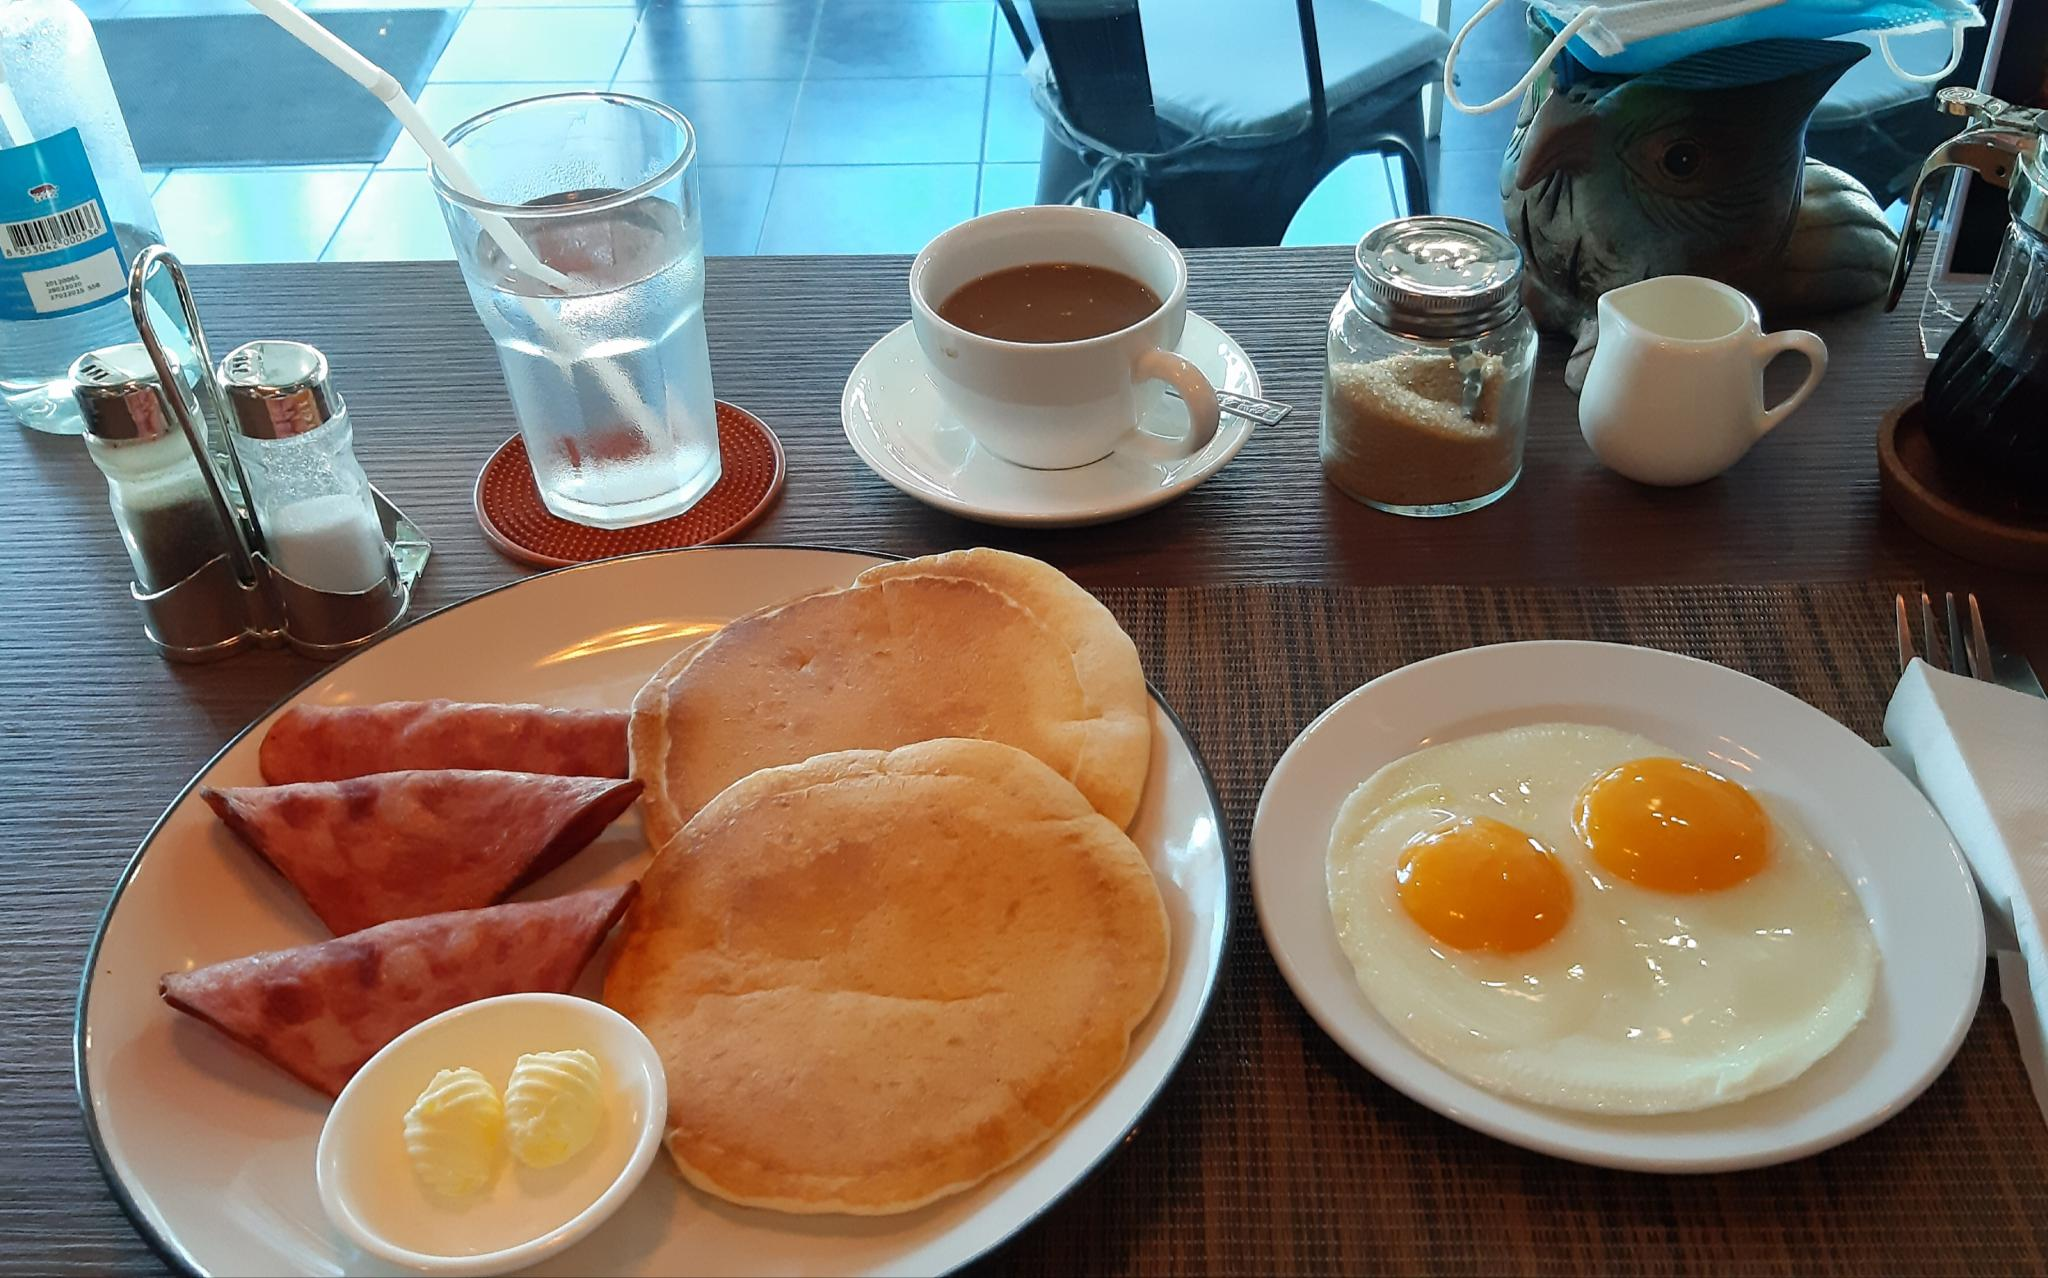 The Best Breakfast in the World Step by Step.: the Full English-20210502_180228-jpg